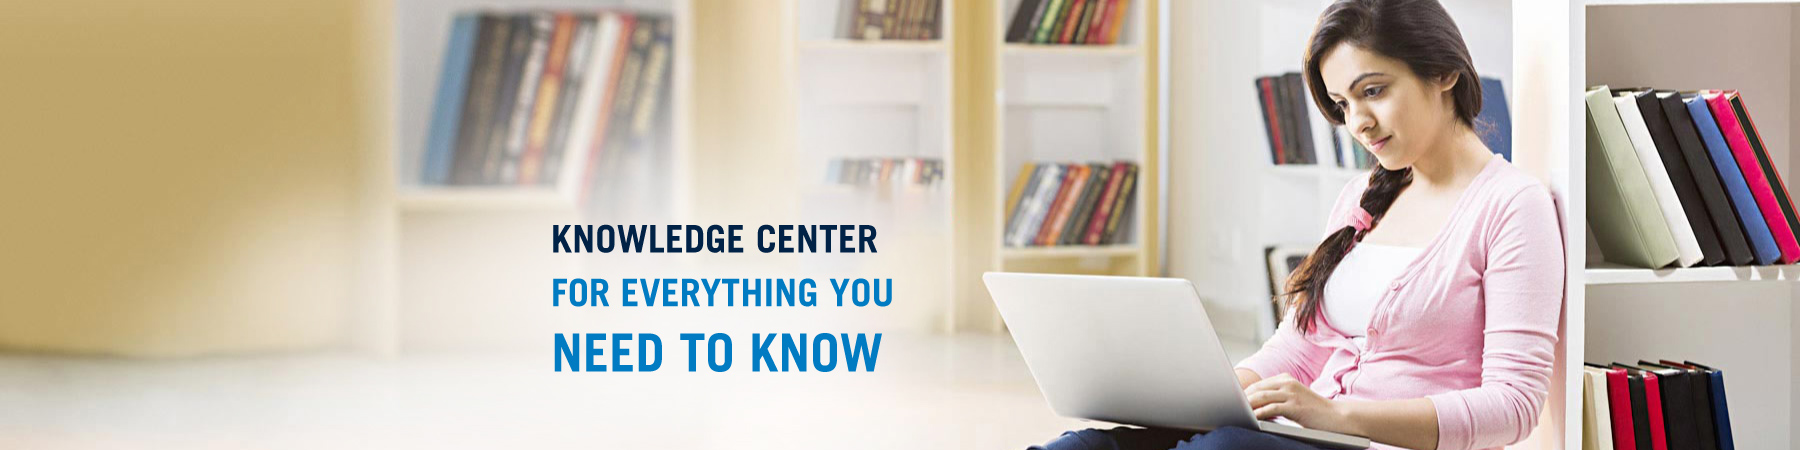 knowledge-center.jpg